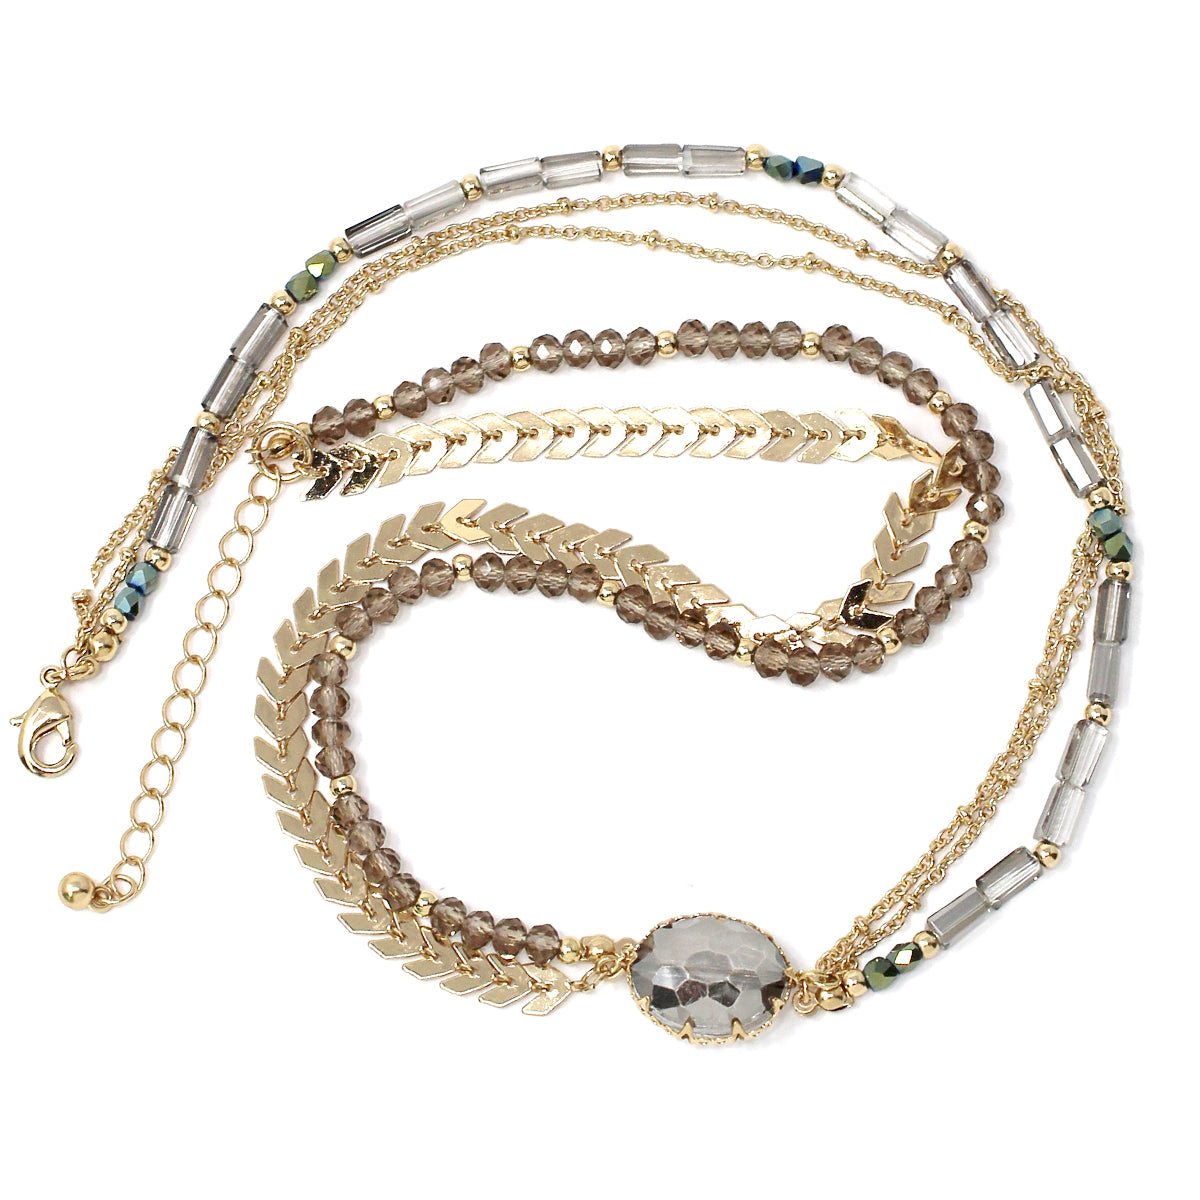 Oval Glass Stone Pendant Glass Beaded Chain Layered Wrap Bracelet